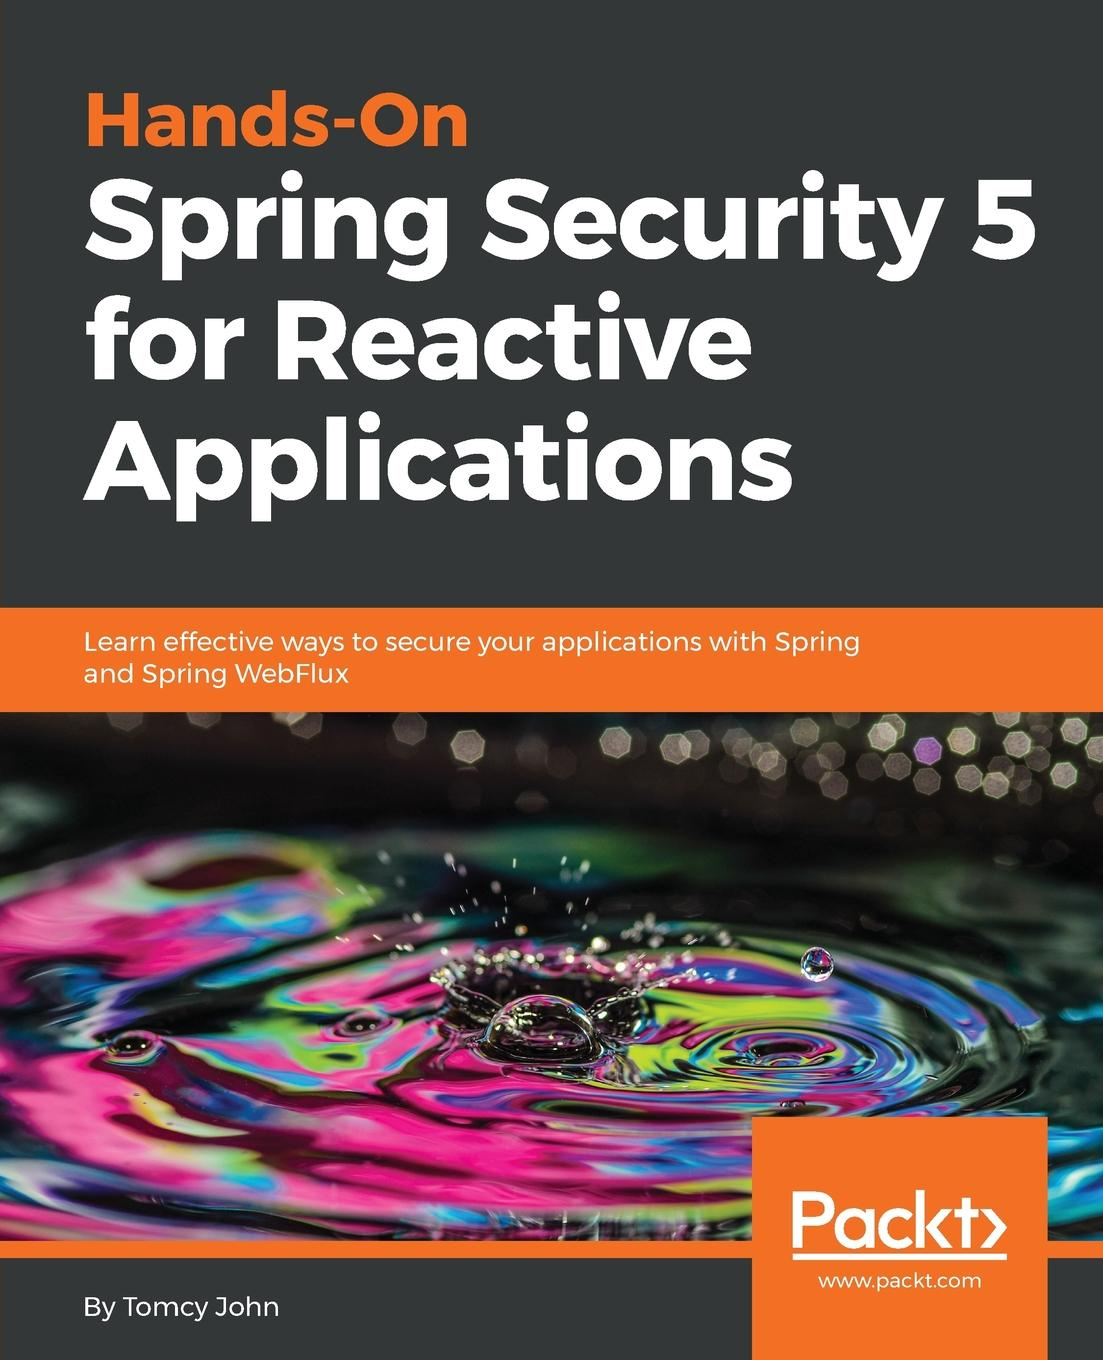 Tomcy John Hands-On Spring Security 5 for Reactive Applications